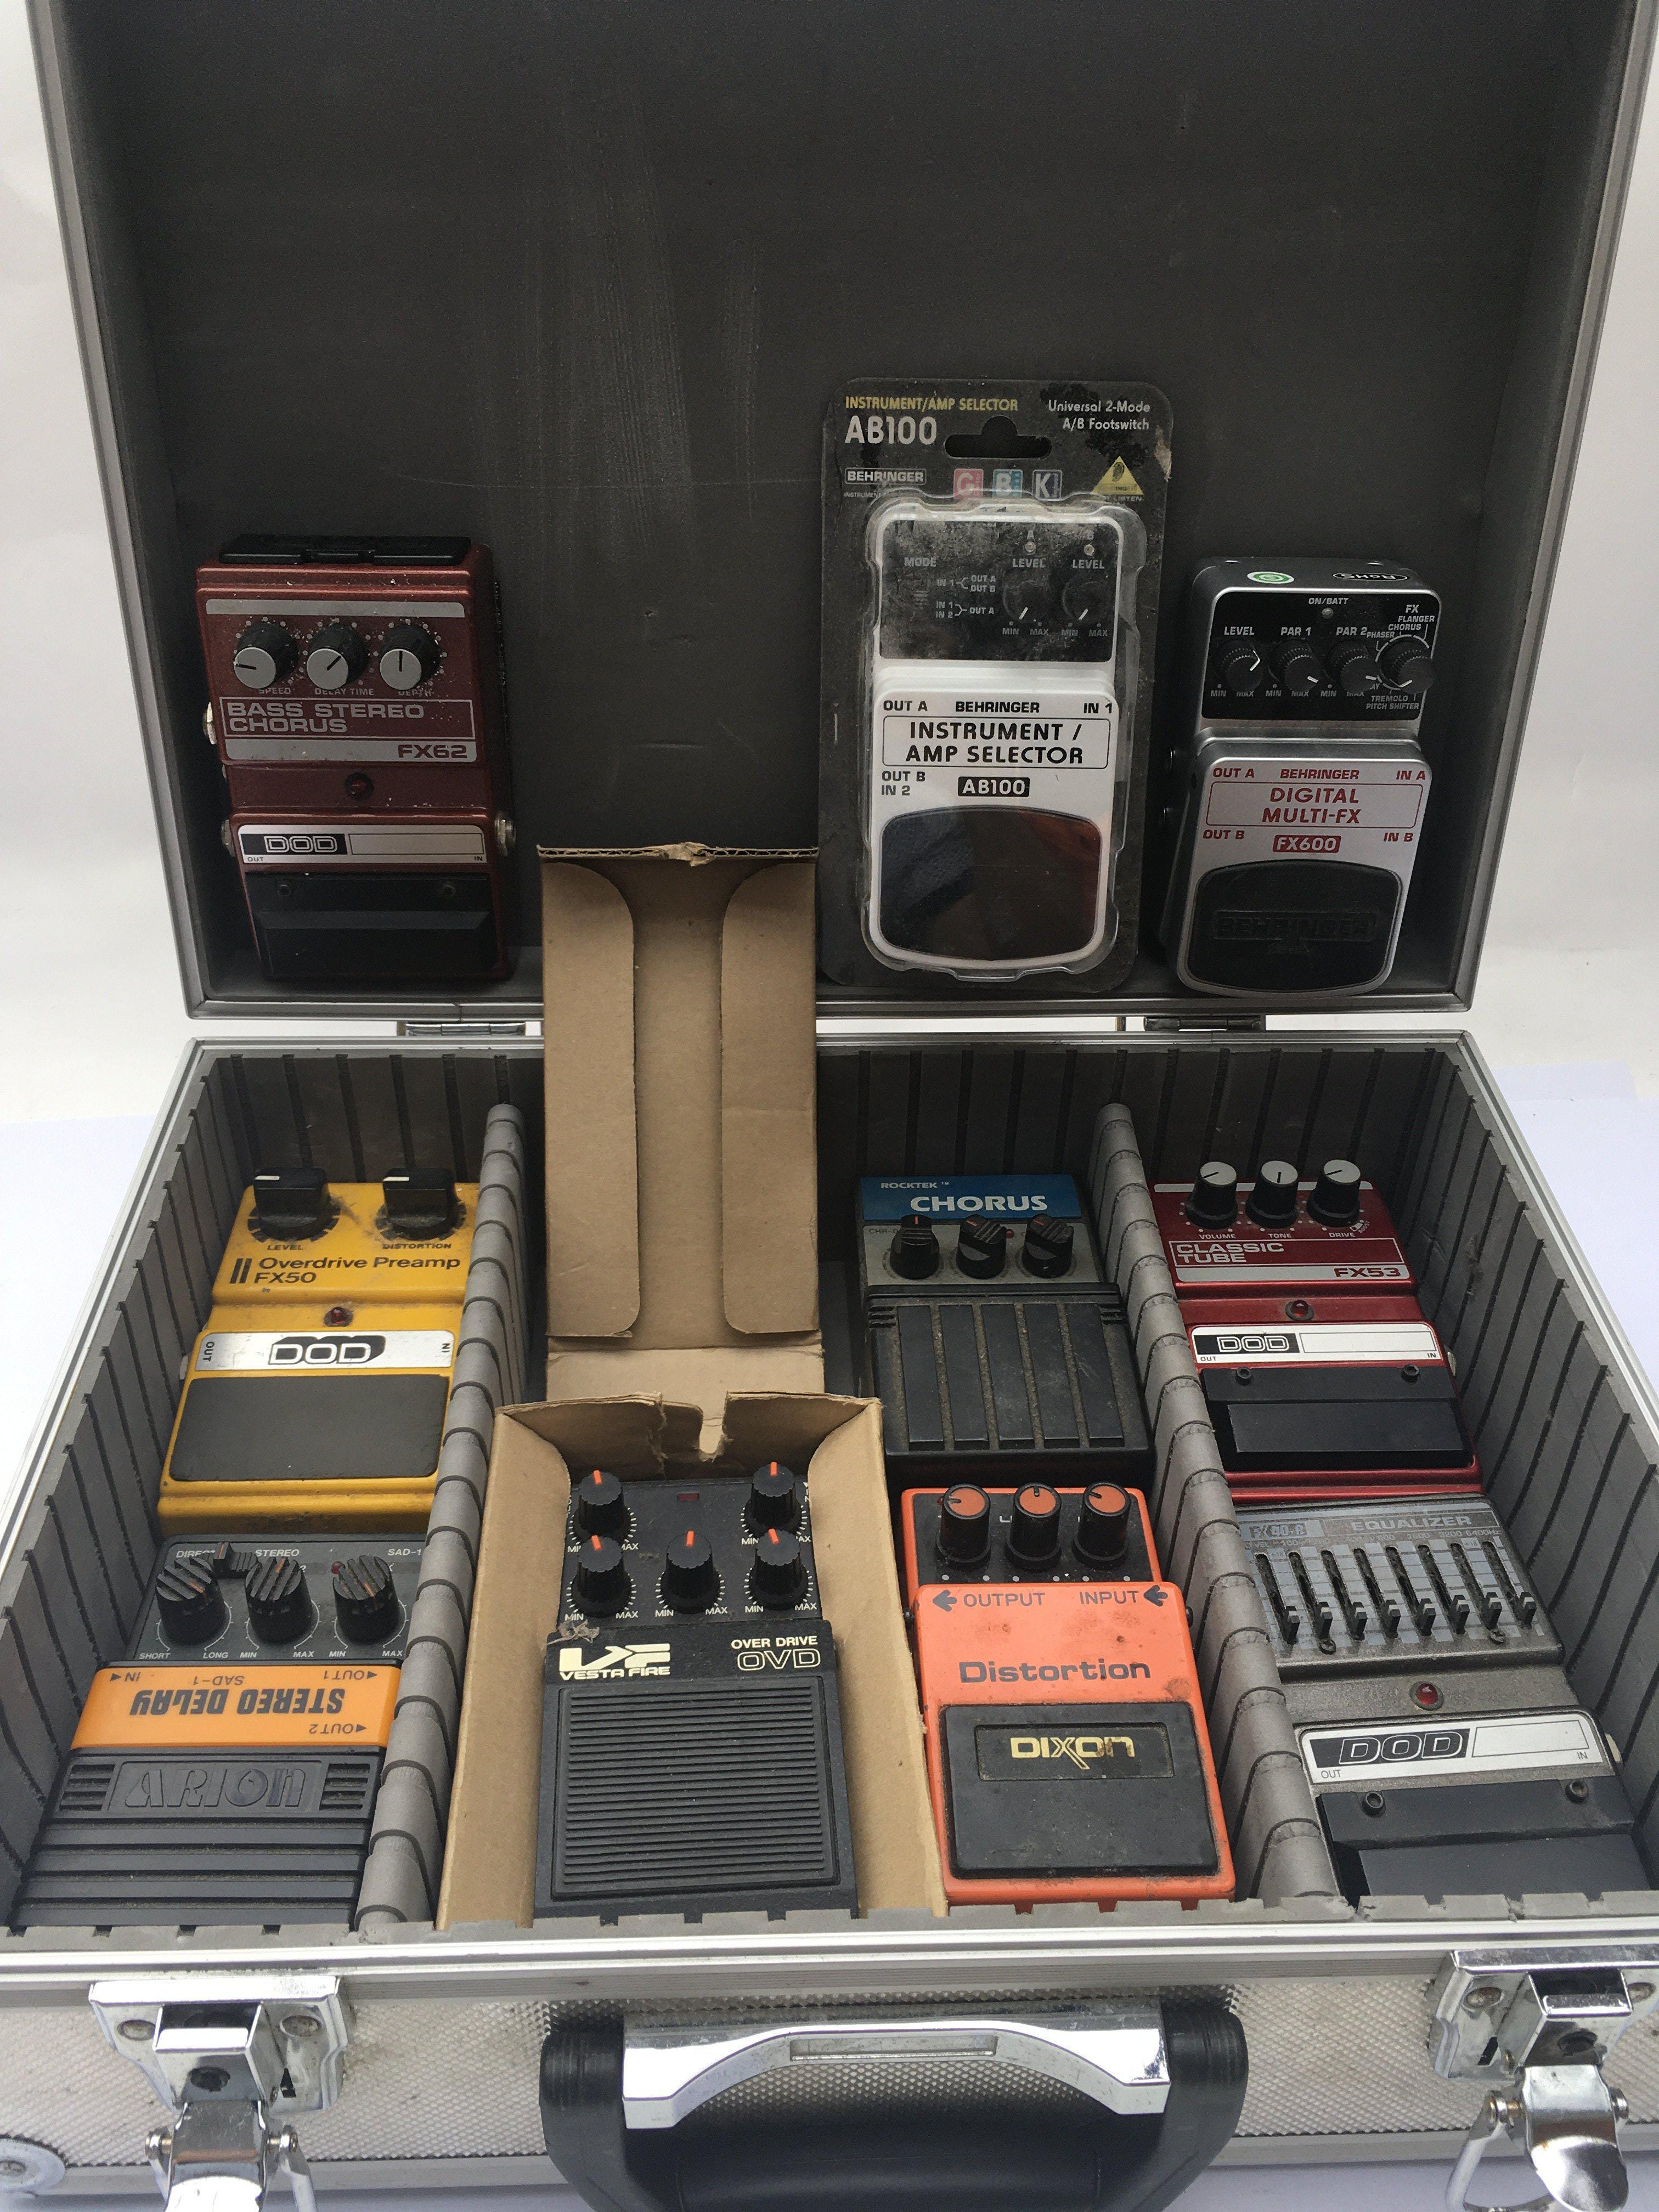 A case of guitar effects pedals including a Dod FX